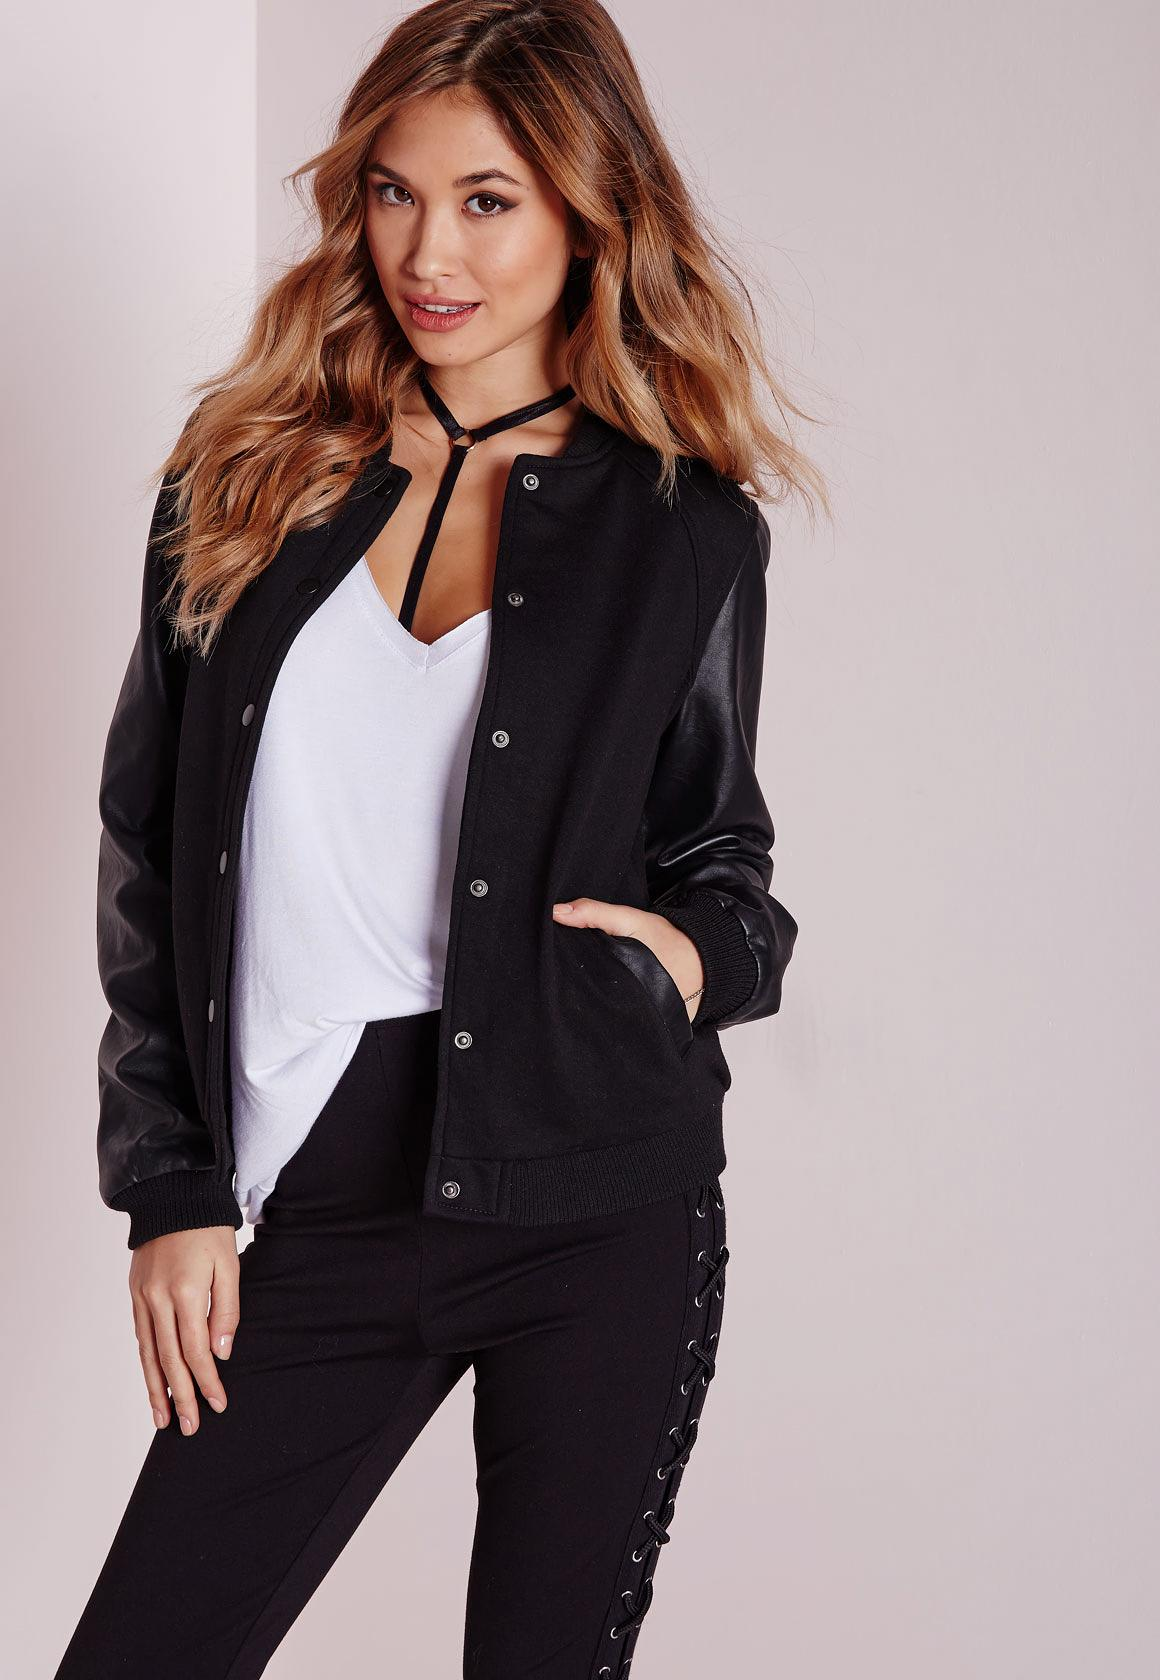 Faux Leather Sleeve Bomber Jacket Black   Missguided